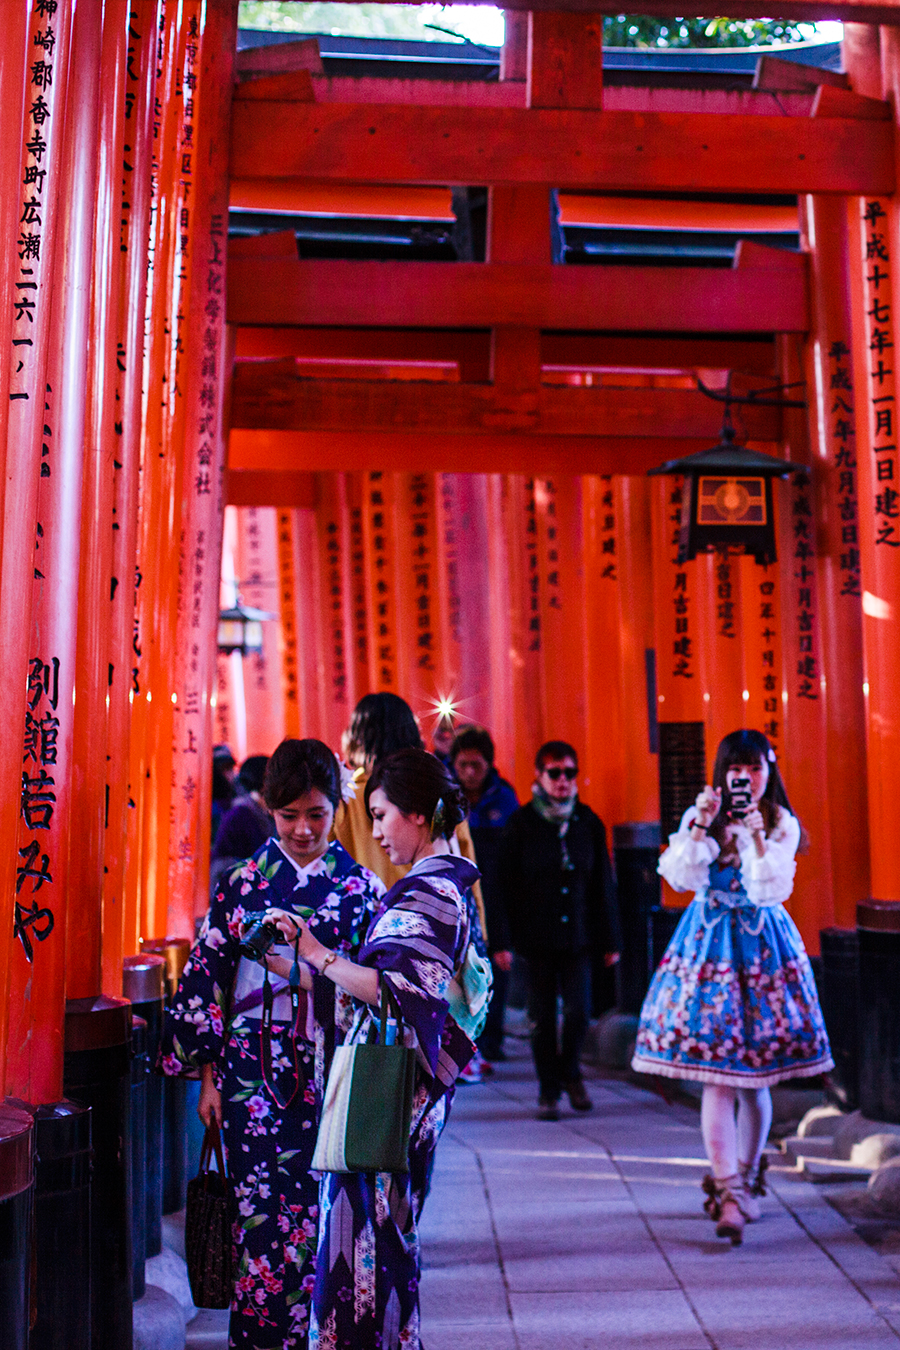 Japanese tourists at Fushimi Inari in Kyoto, Japan.